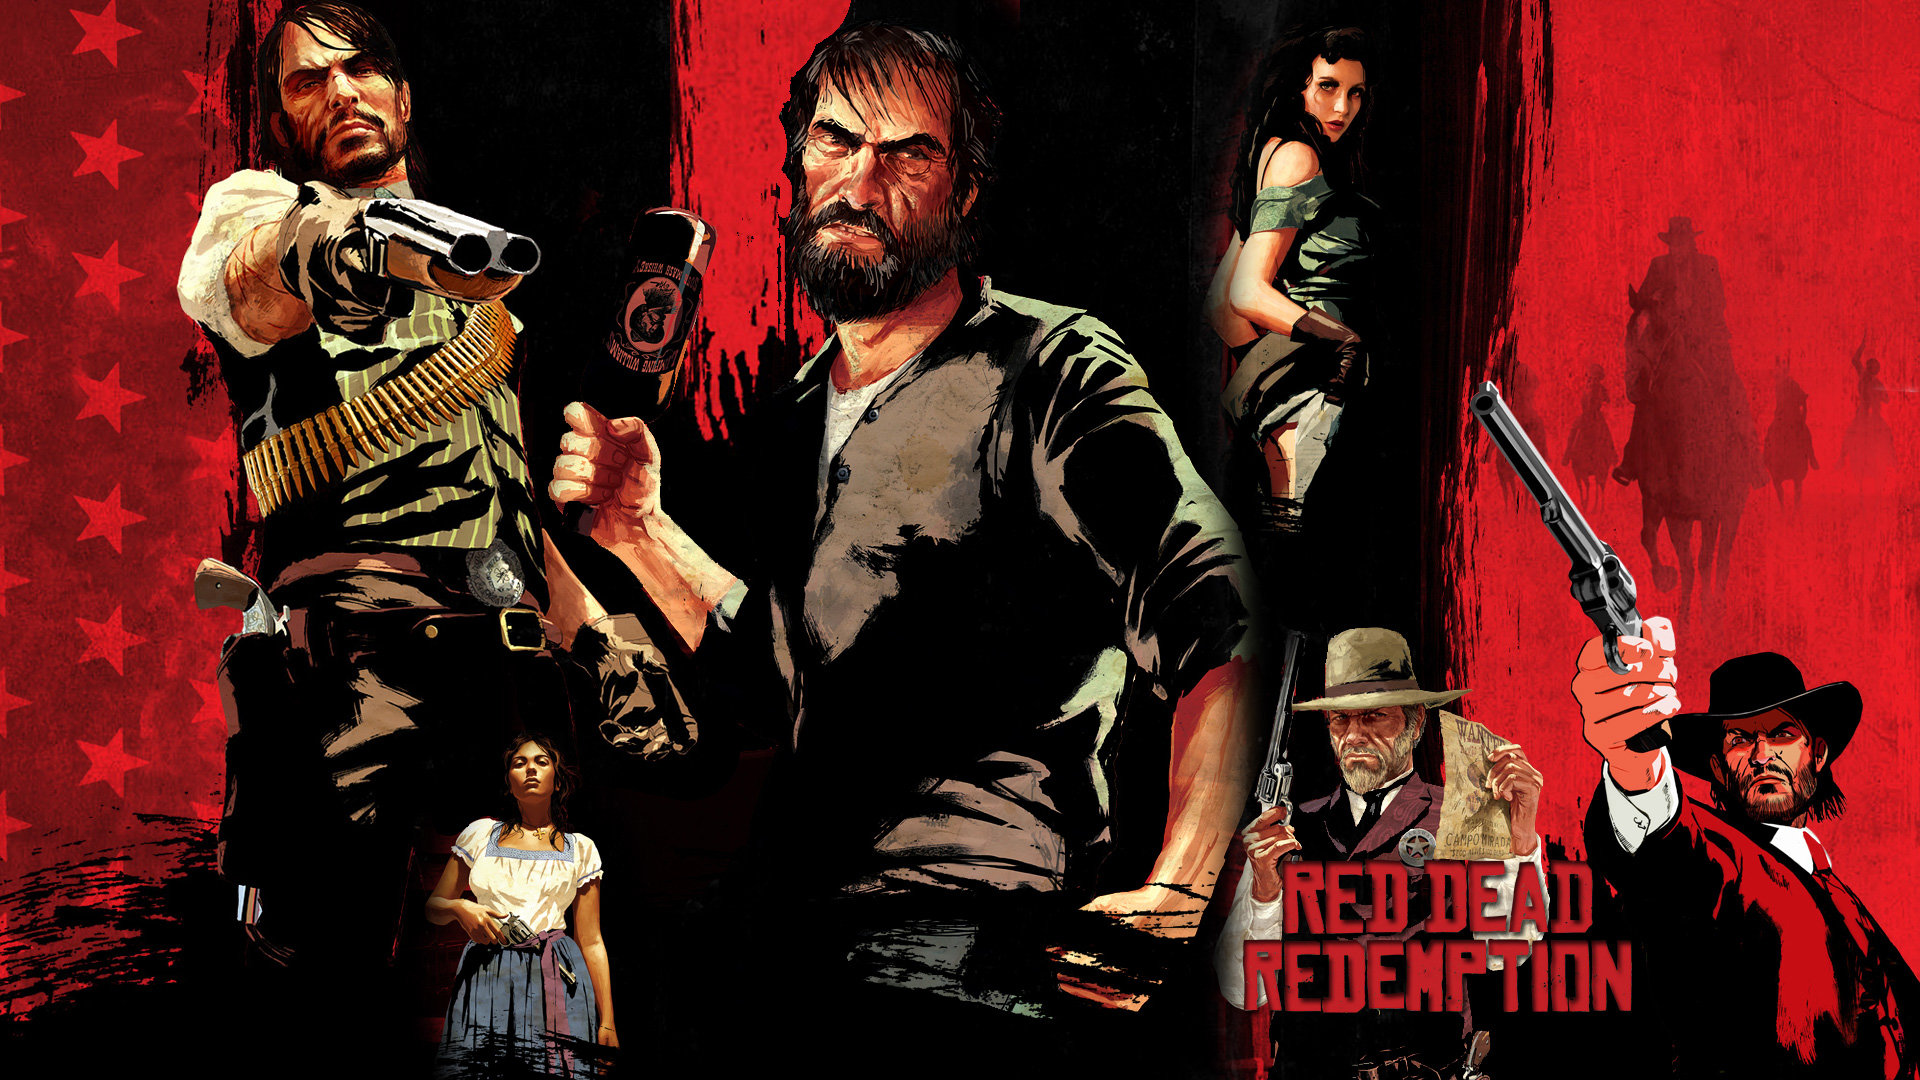 Awesome Red Dead Redemption Free Wallpaper Id 431986 For Hd 1080p